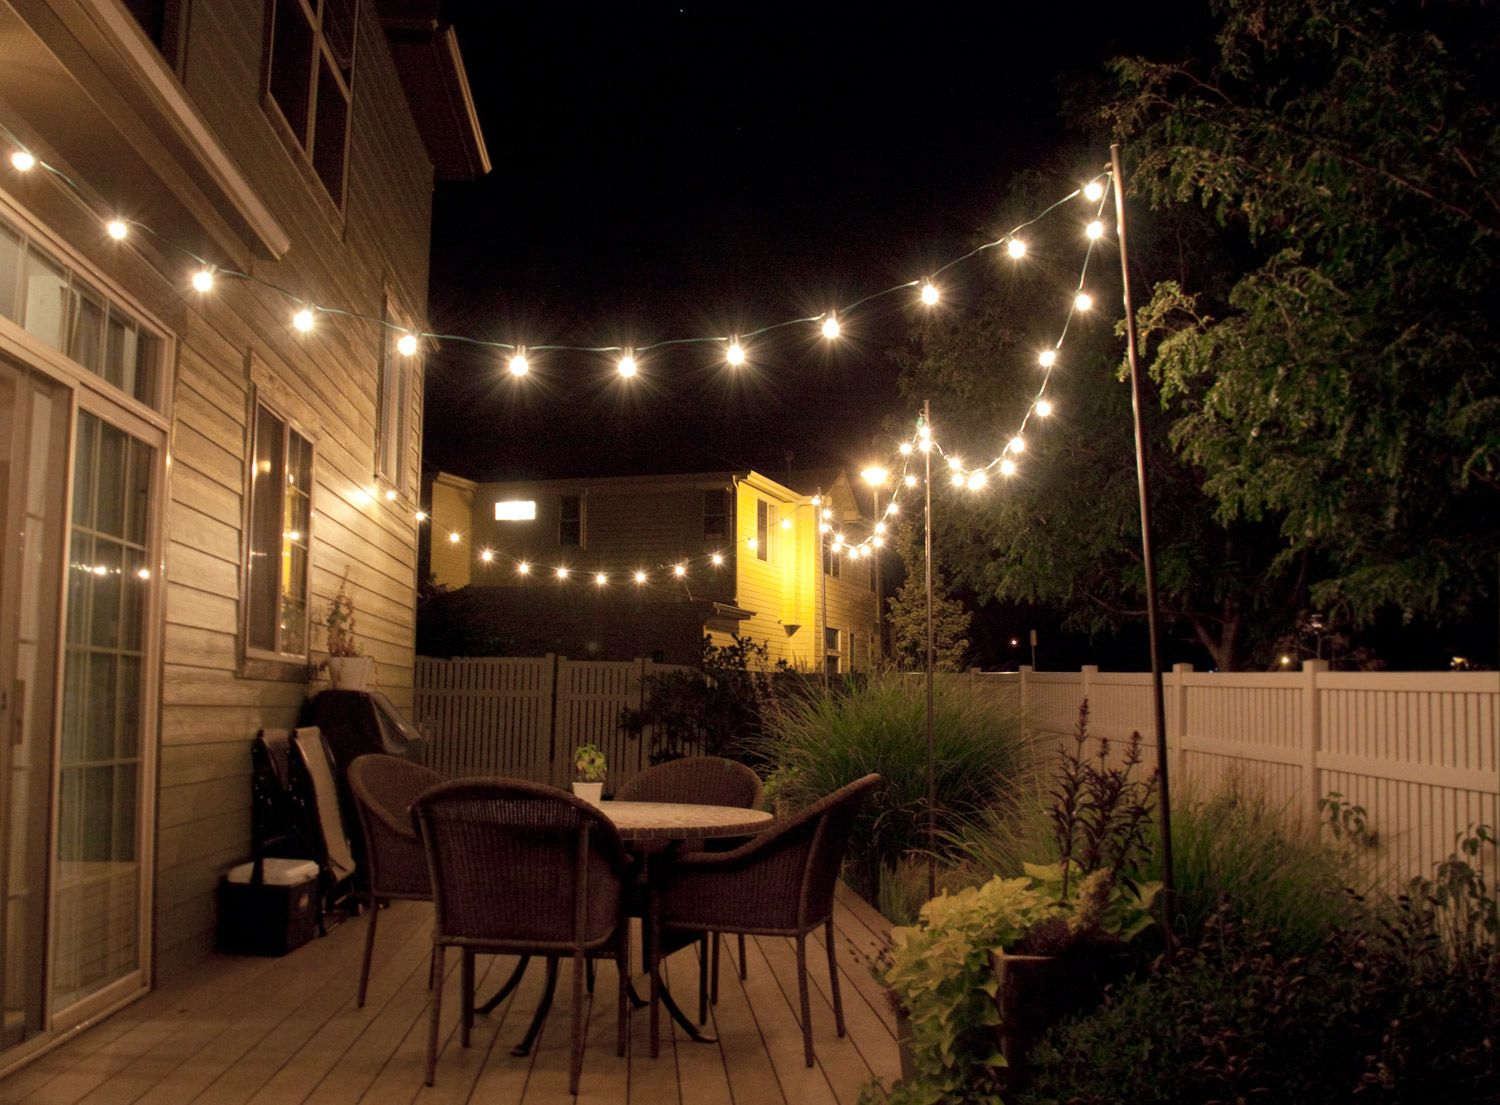 How To Hang Outdoor String Lights Glamorous How To Make Inexpensive Poles To Hang String Lights On  Café Style Design Inspiration